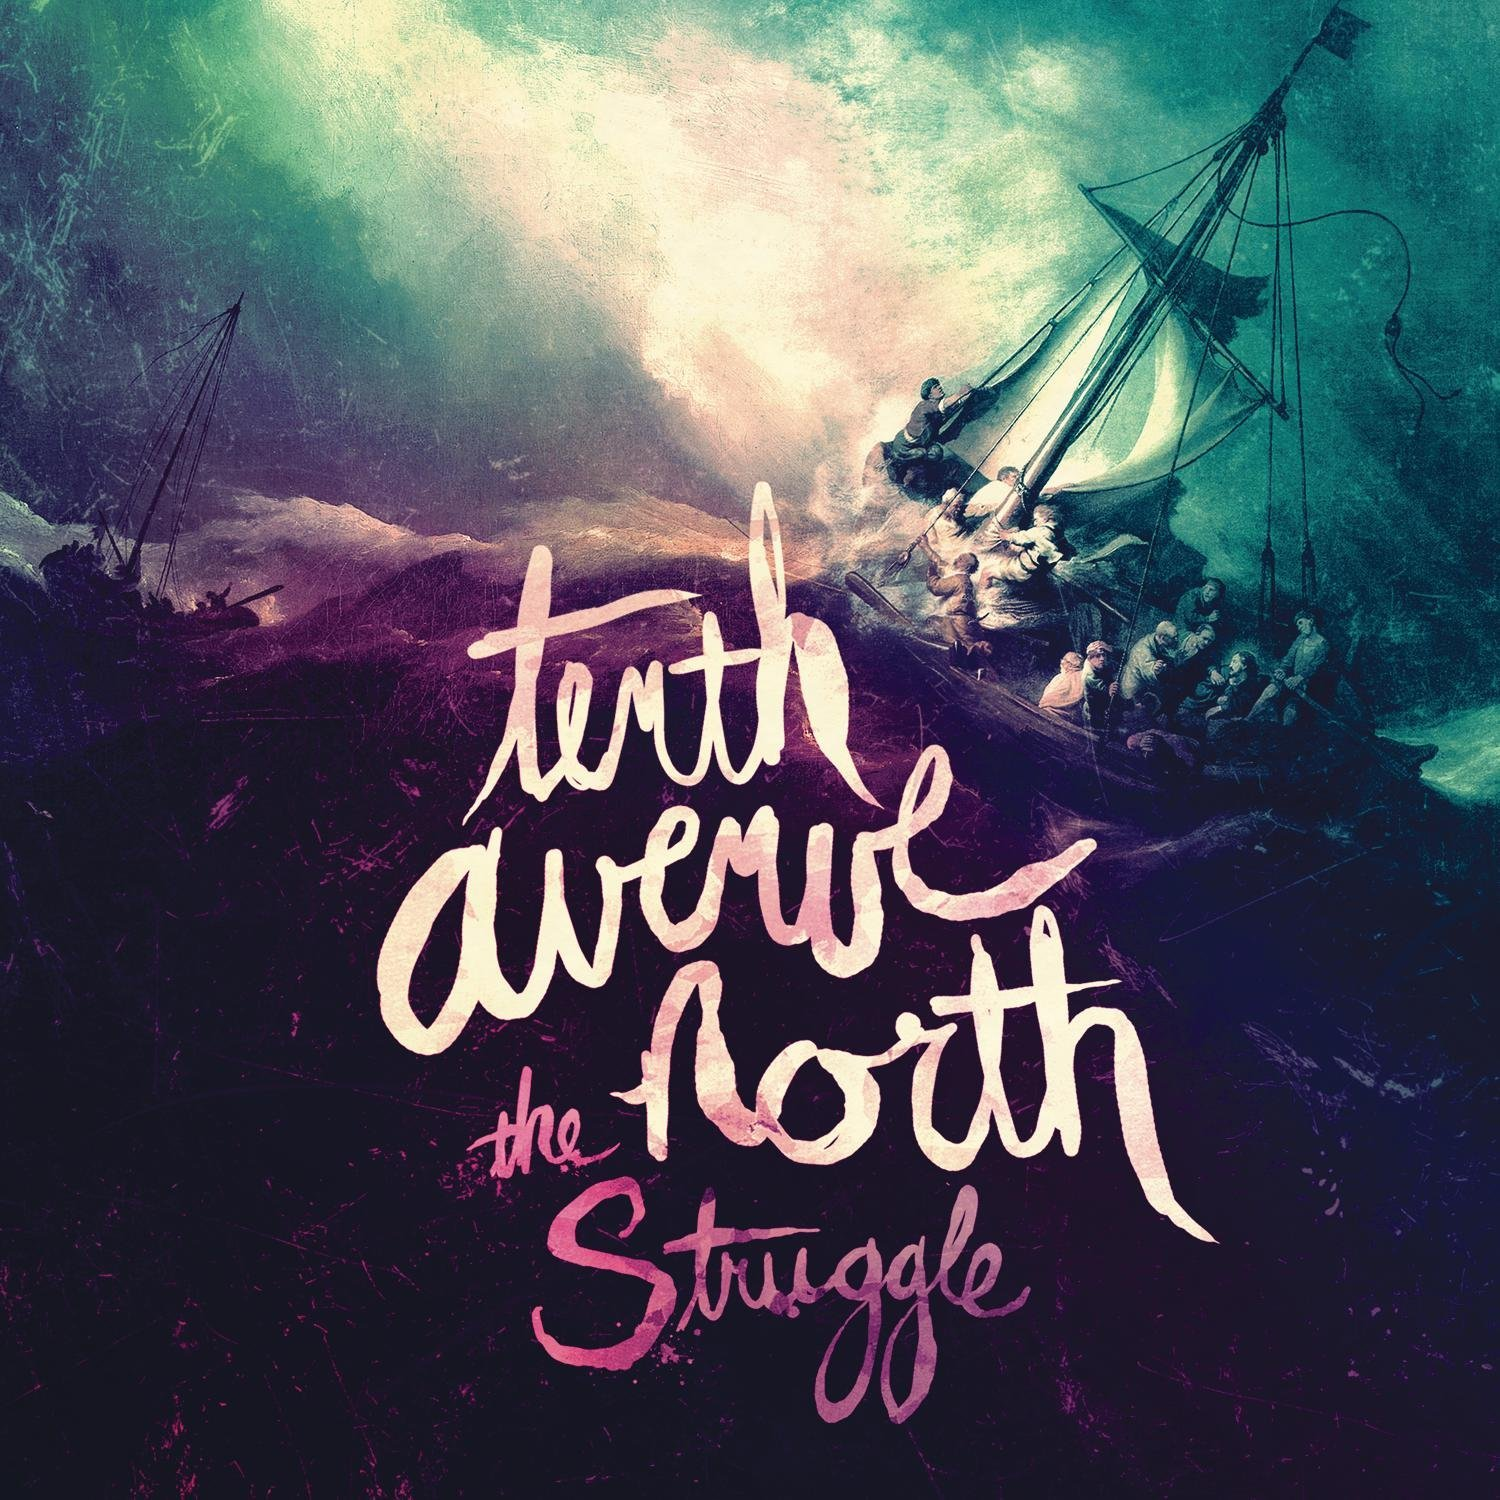 The Struggle - Tenth Avenue NorthReview Date: 3/2/14Release Date: 2/10/14Rating: 4/5